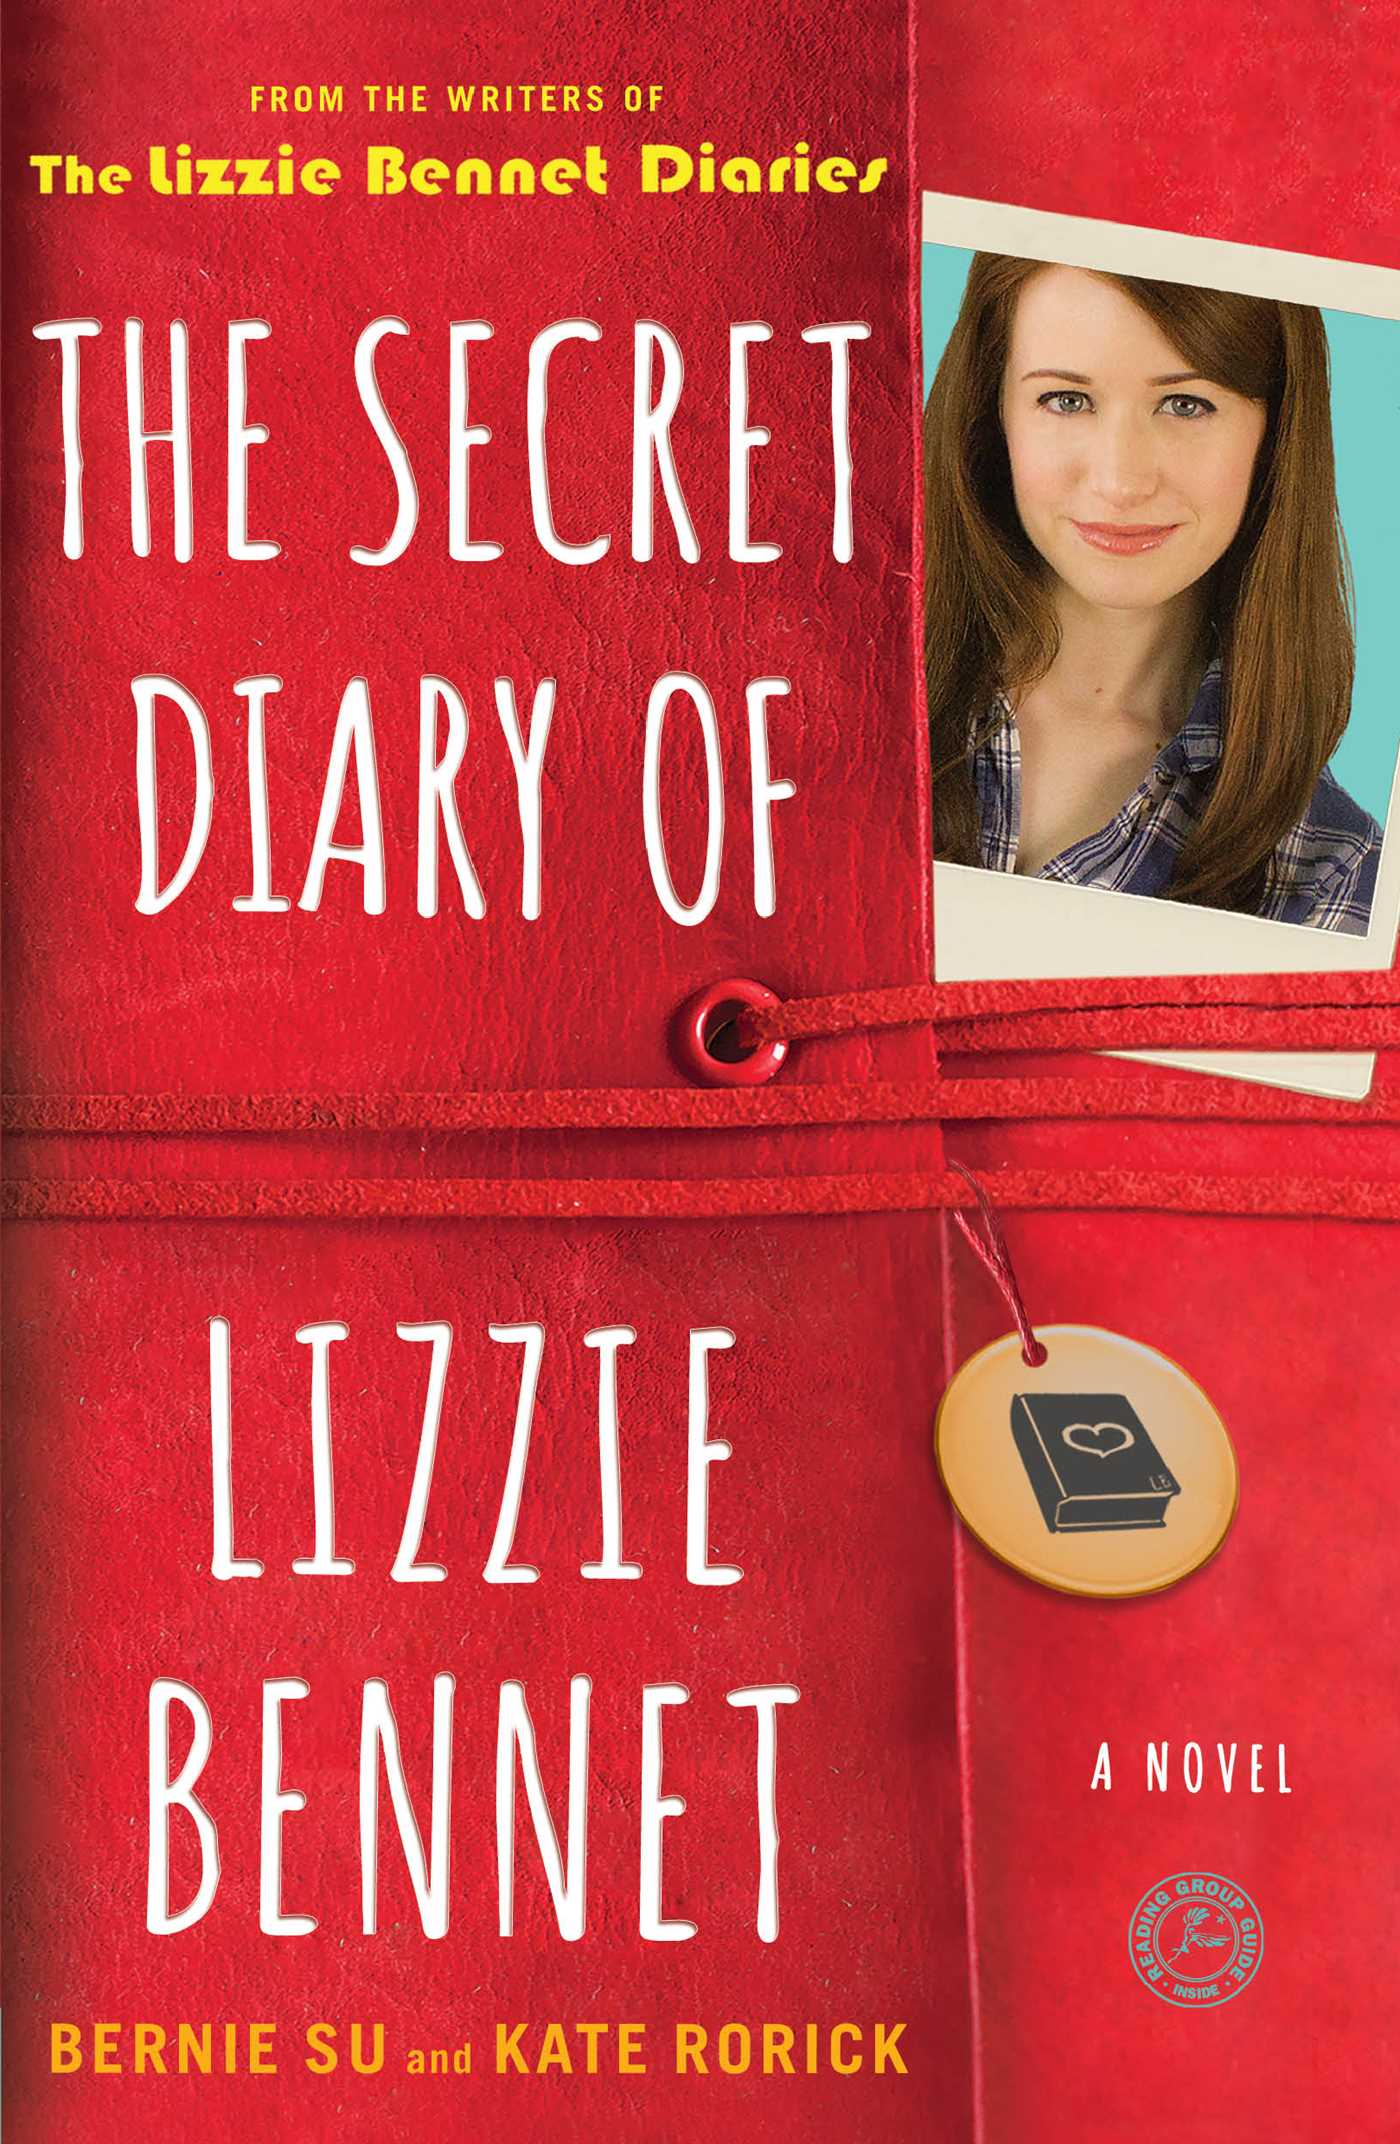 Secret-diary-of-lizzie-bennet-9781476763149_hr